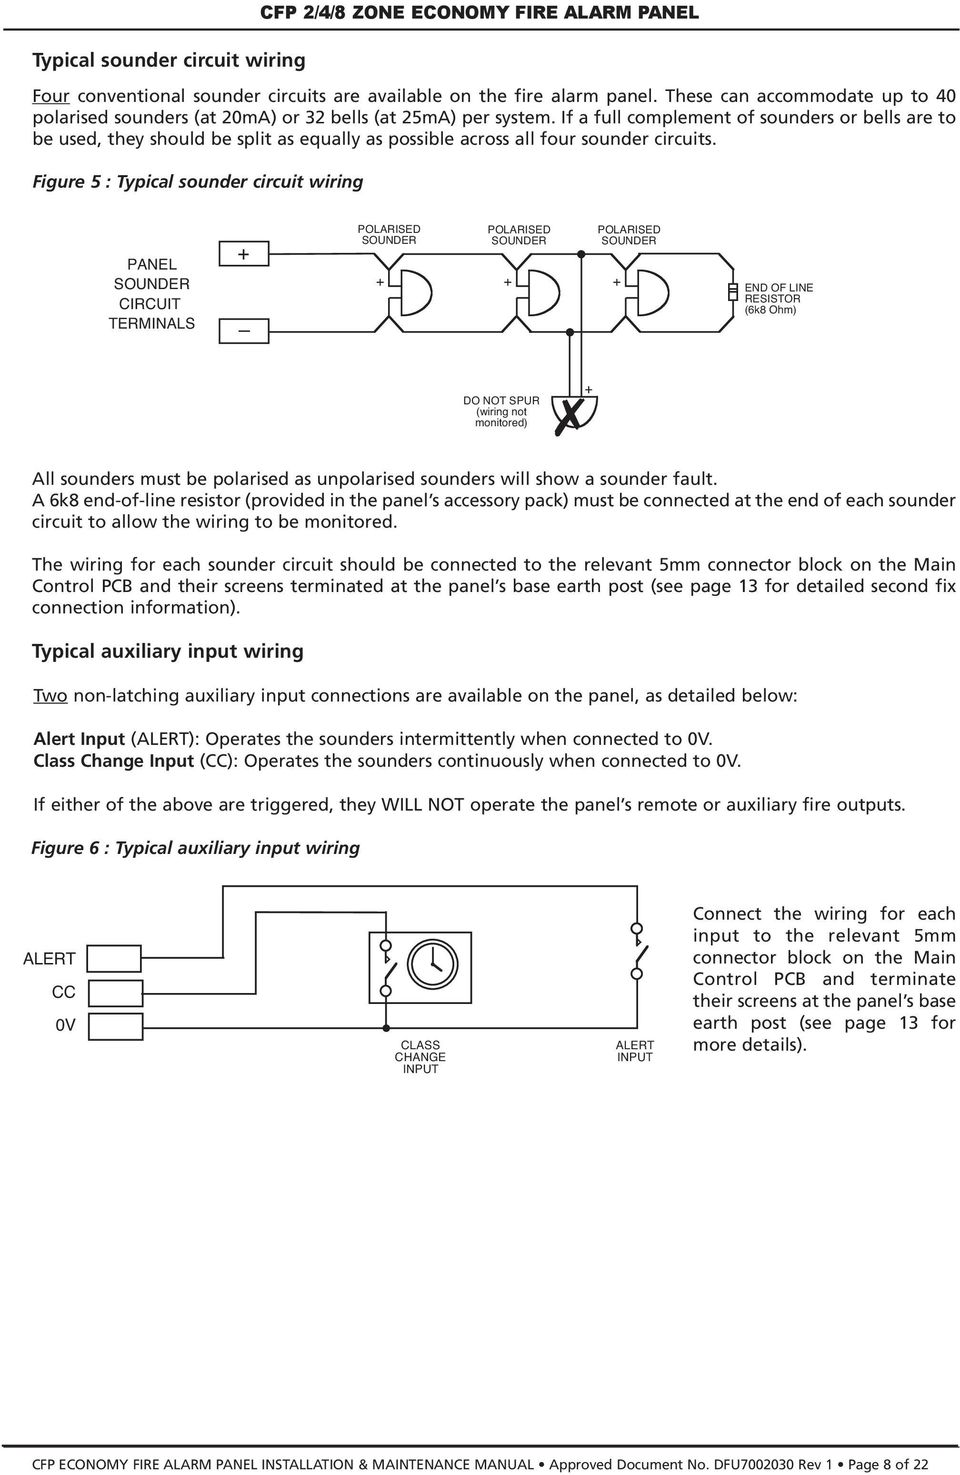 hight resolution of cfp 2 4 8 zone economy fire alarm control panel installation figure 719 typical fire alarm system schematic diagram